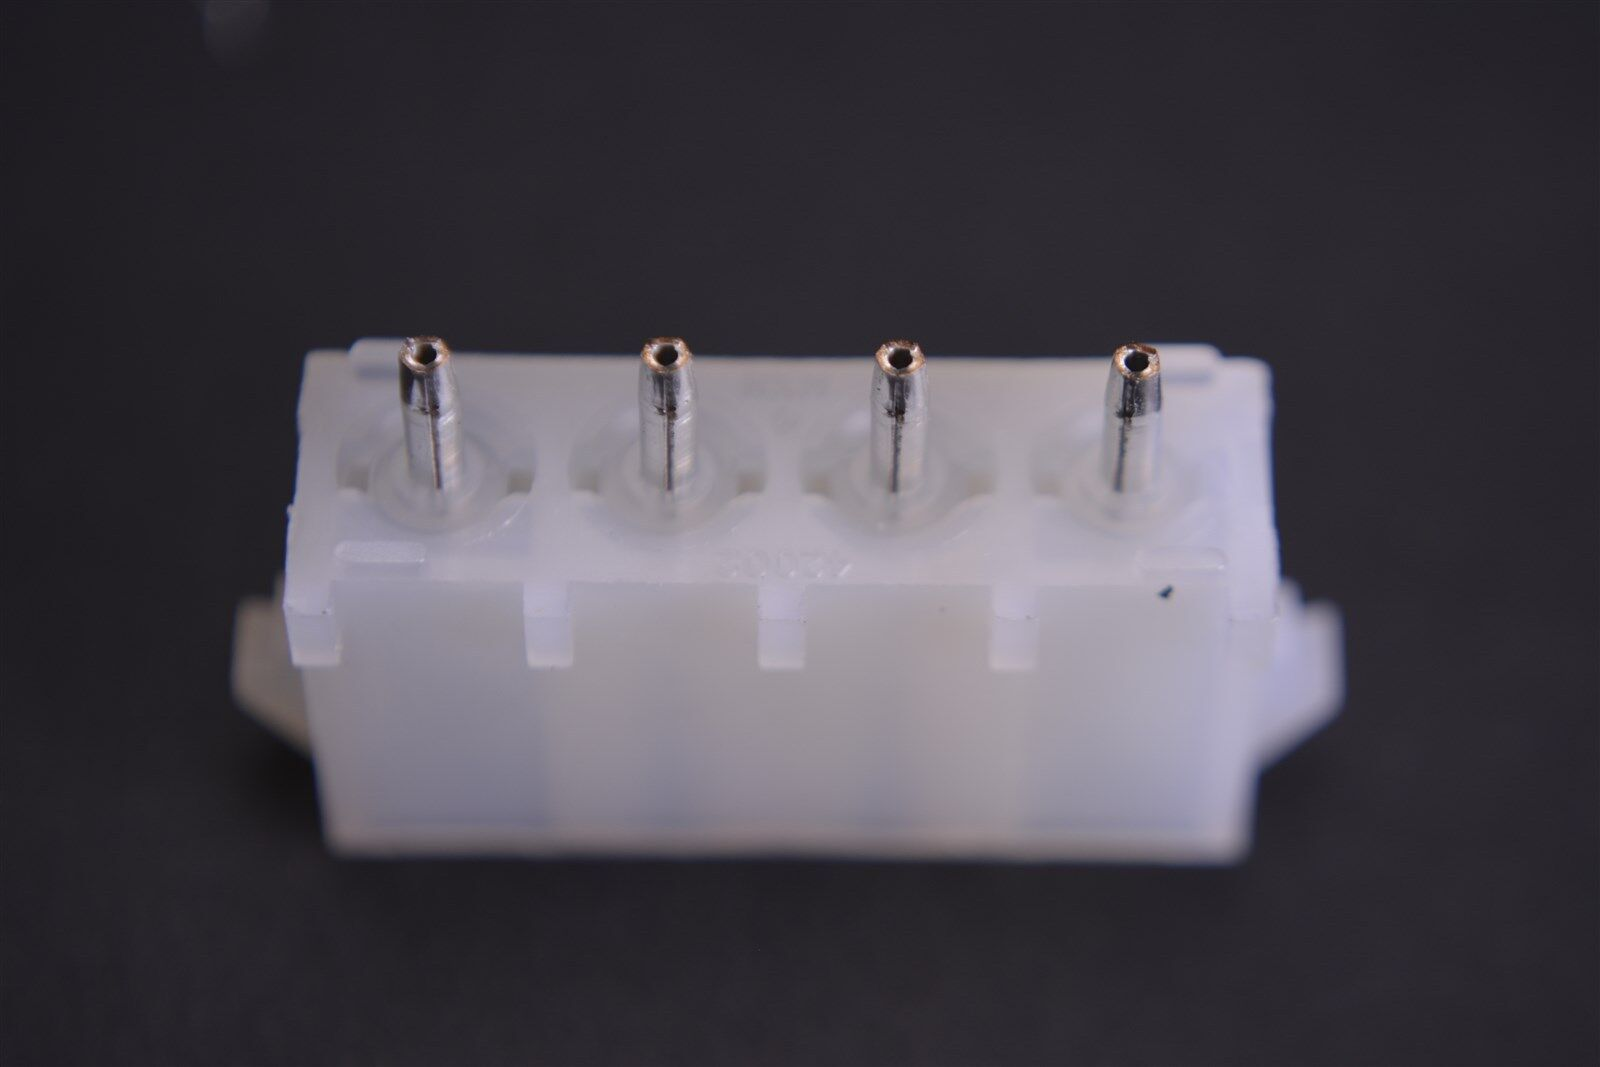 10-89-7140 Header Board-To-Board Connector Through Hole 14 Contacts 10-89-7140 2.54 mm Pack of 20 C-Grid 70280 Series 2 Rows